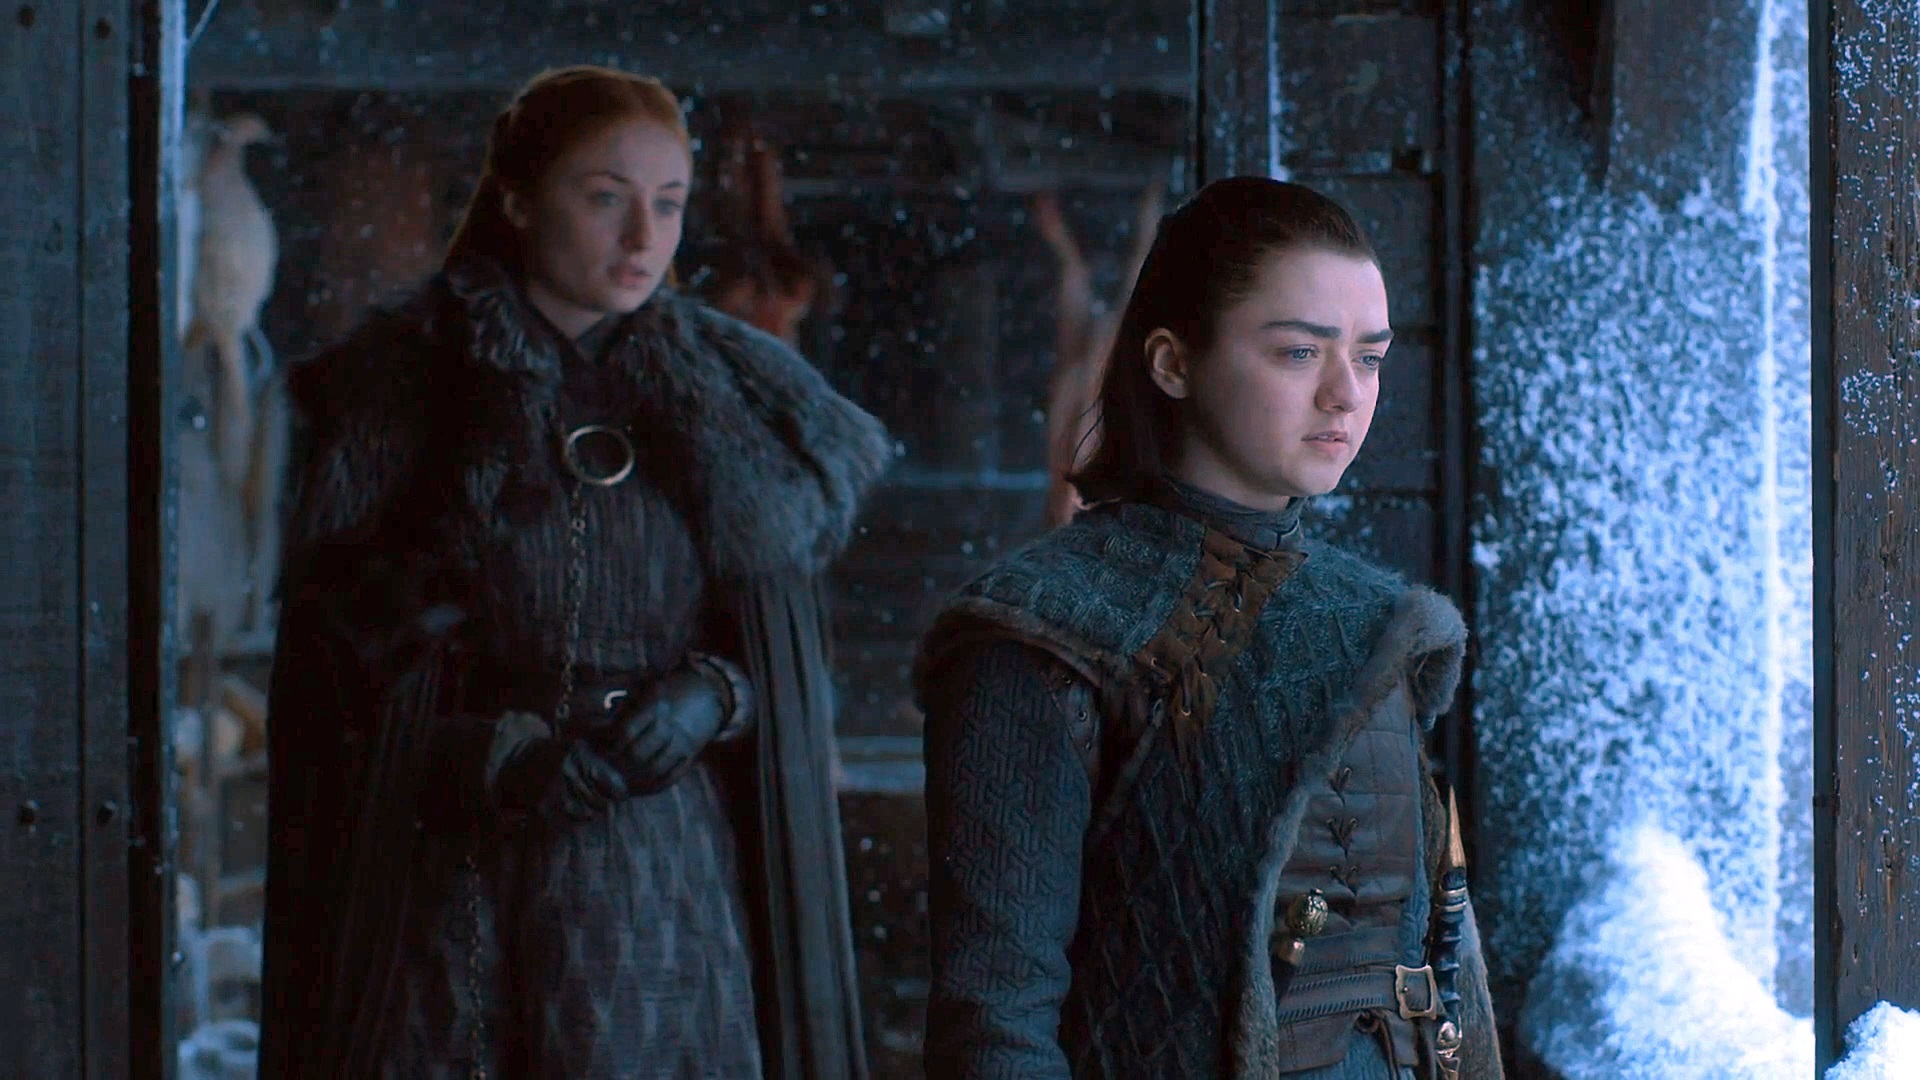 Game-Of-Thrones-7x06-Beyond-the-Wall-2